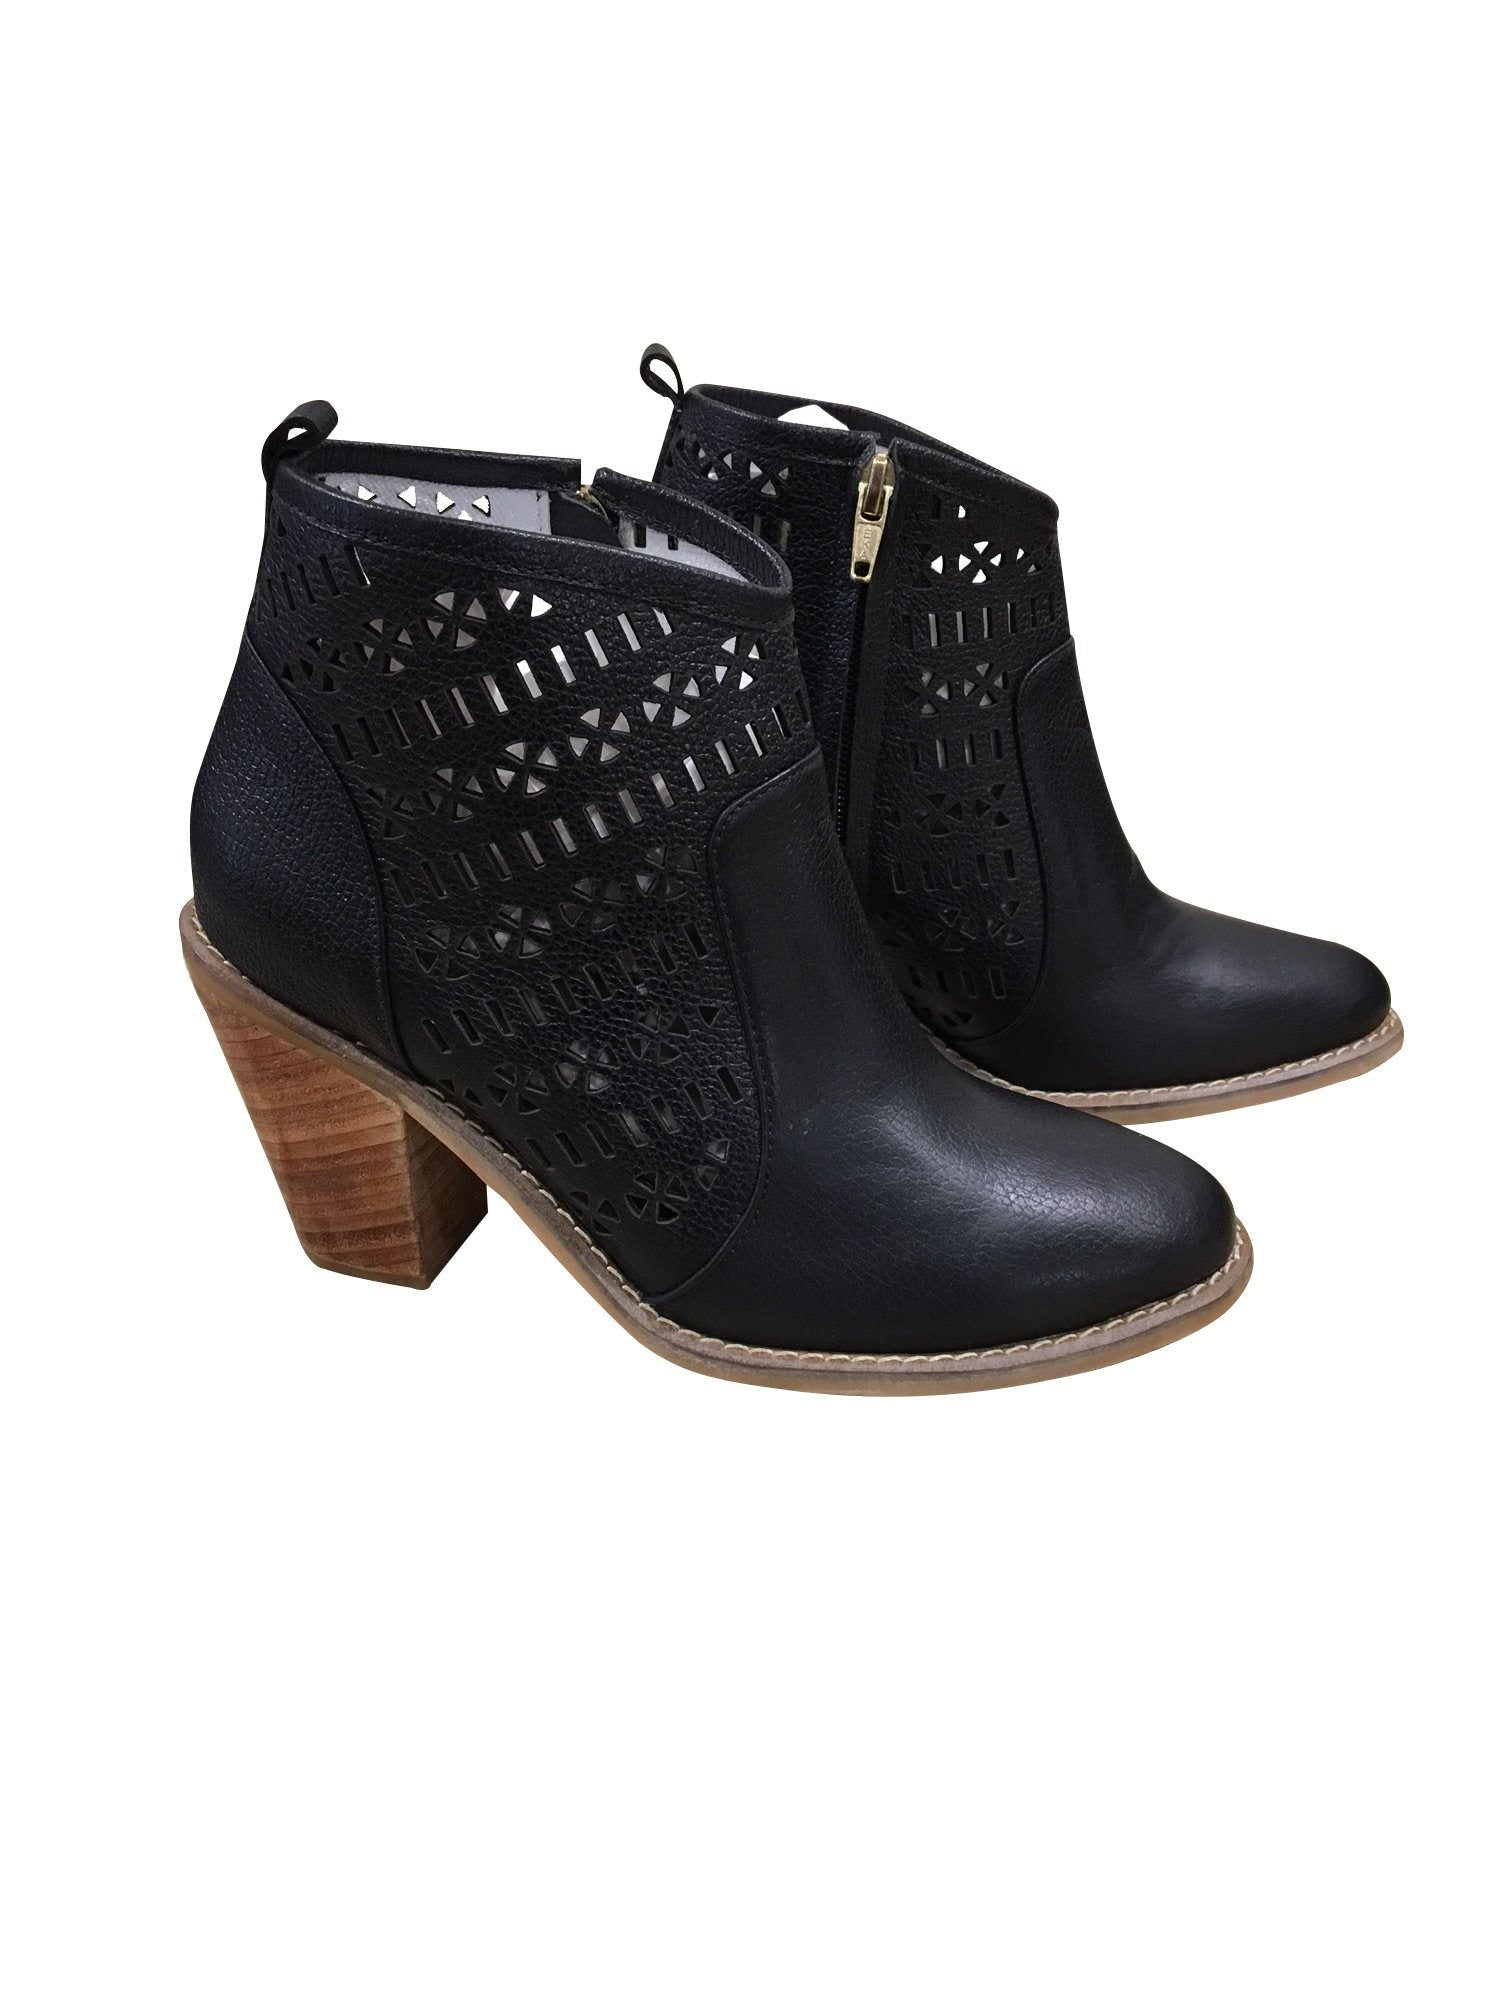 Bengali Ankle Boot - The Gaspy Collection